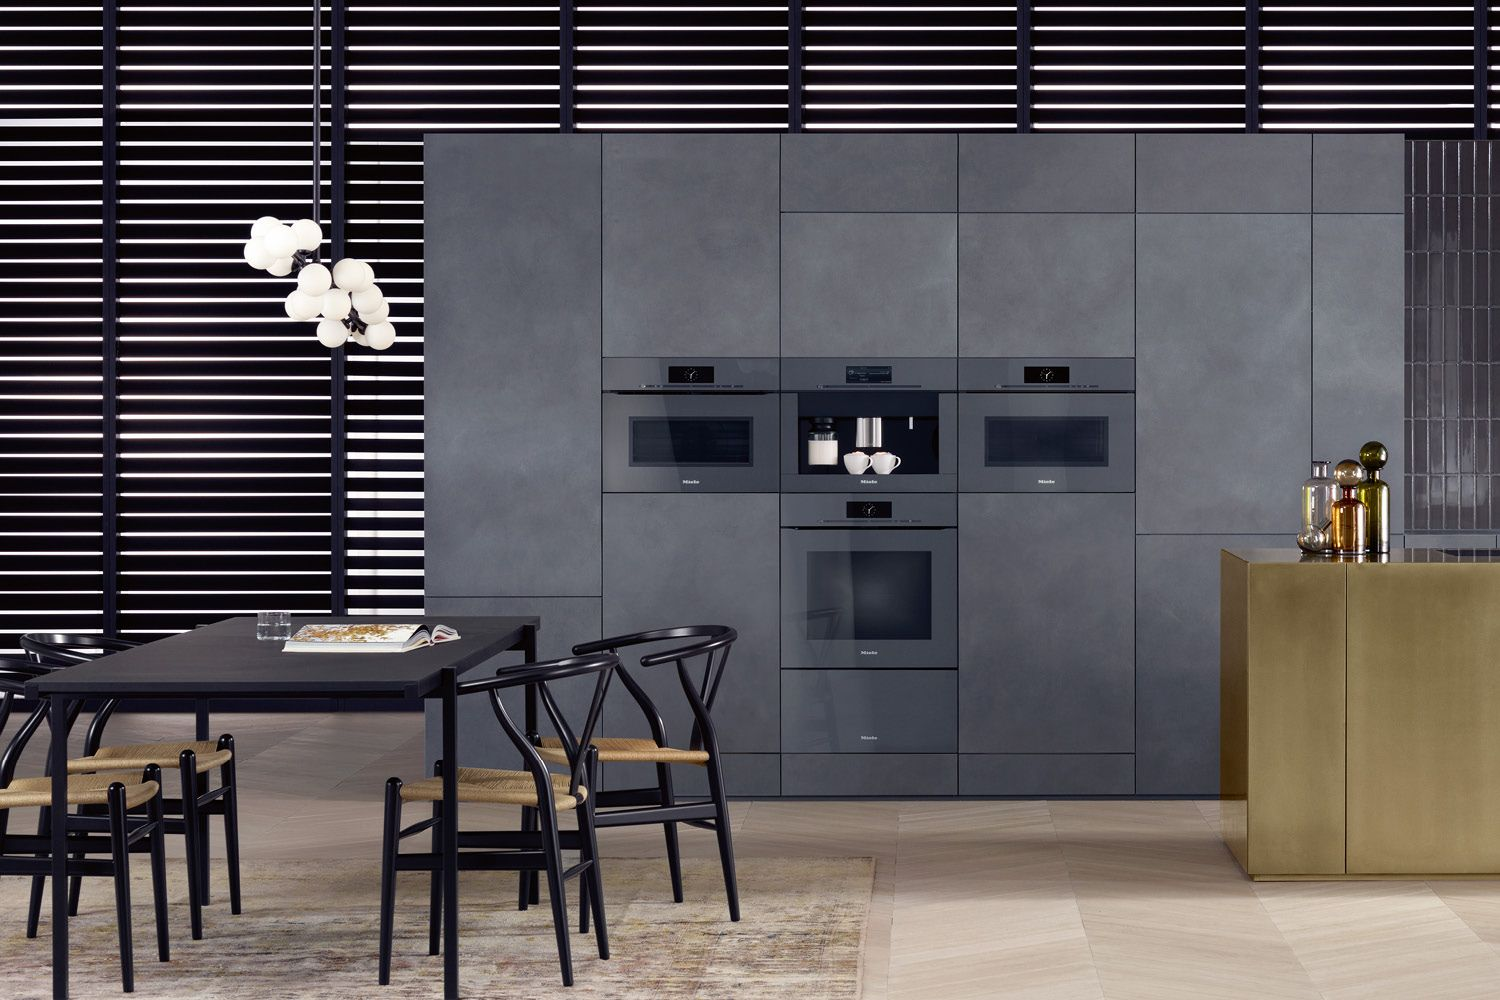 Here's Looking at the Future of Kitchen Appliances